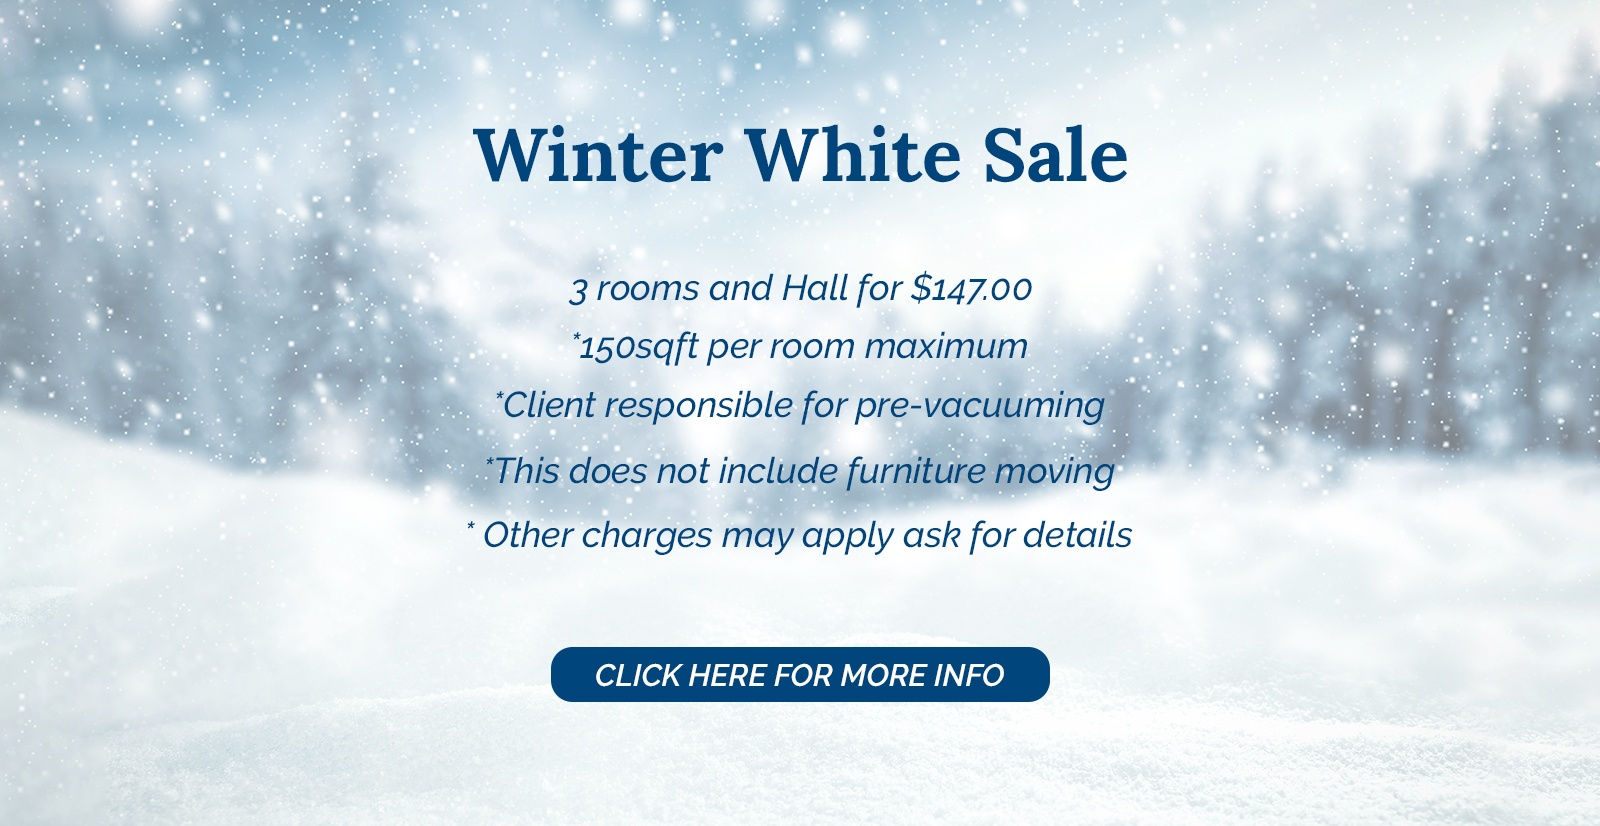 Winter White Sale at Carpet Masters -  Carpet Cleaning Company in Cambridge